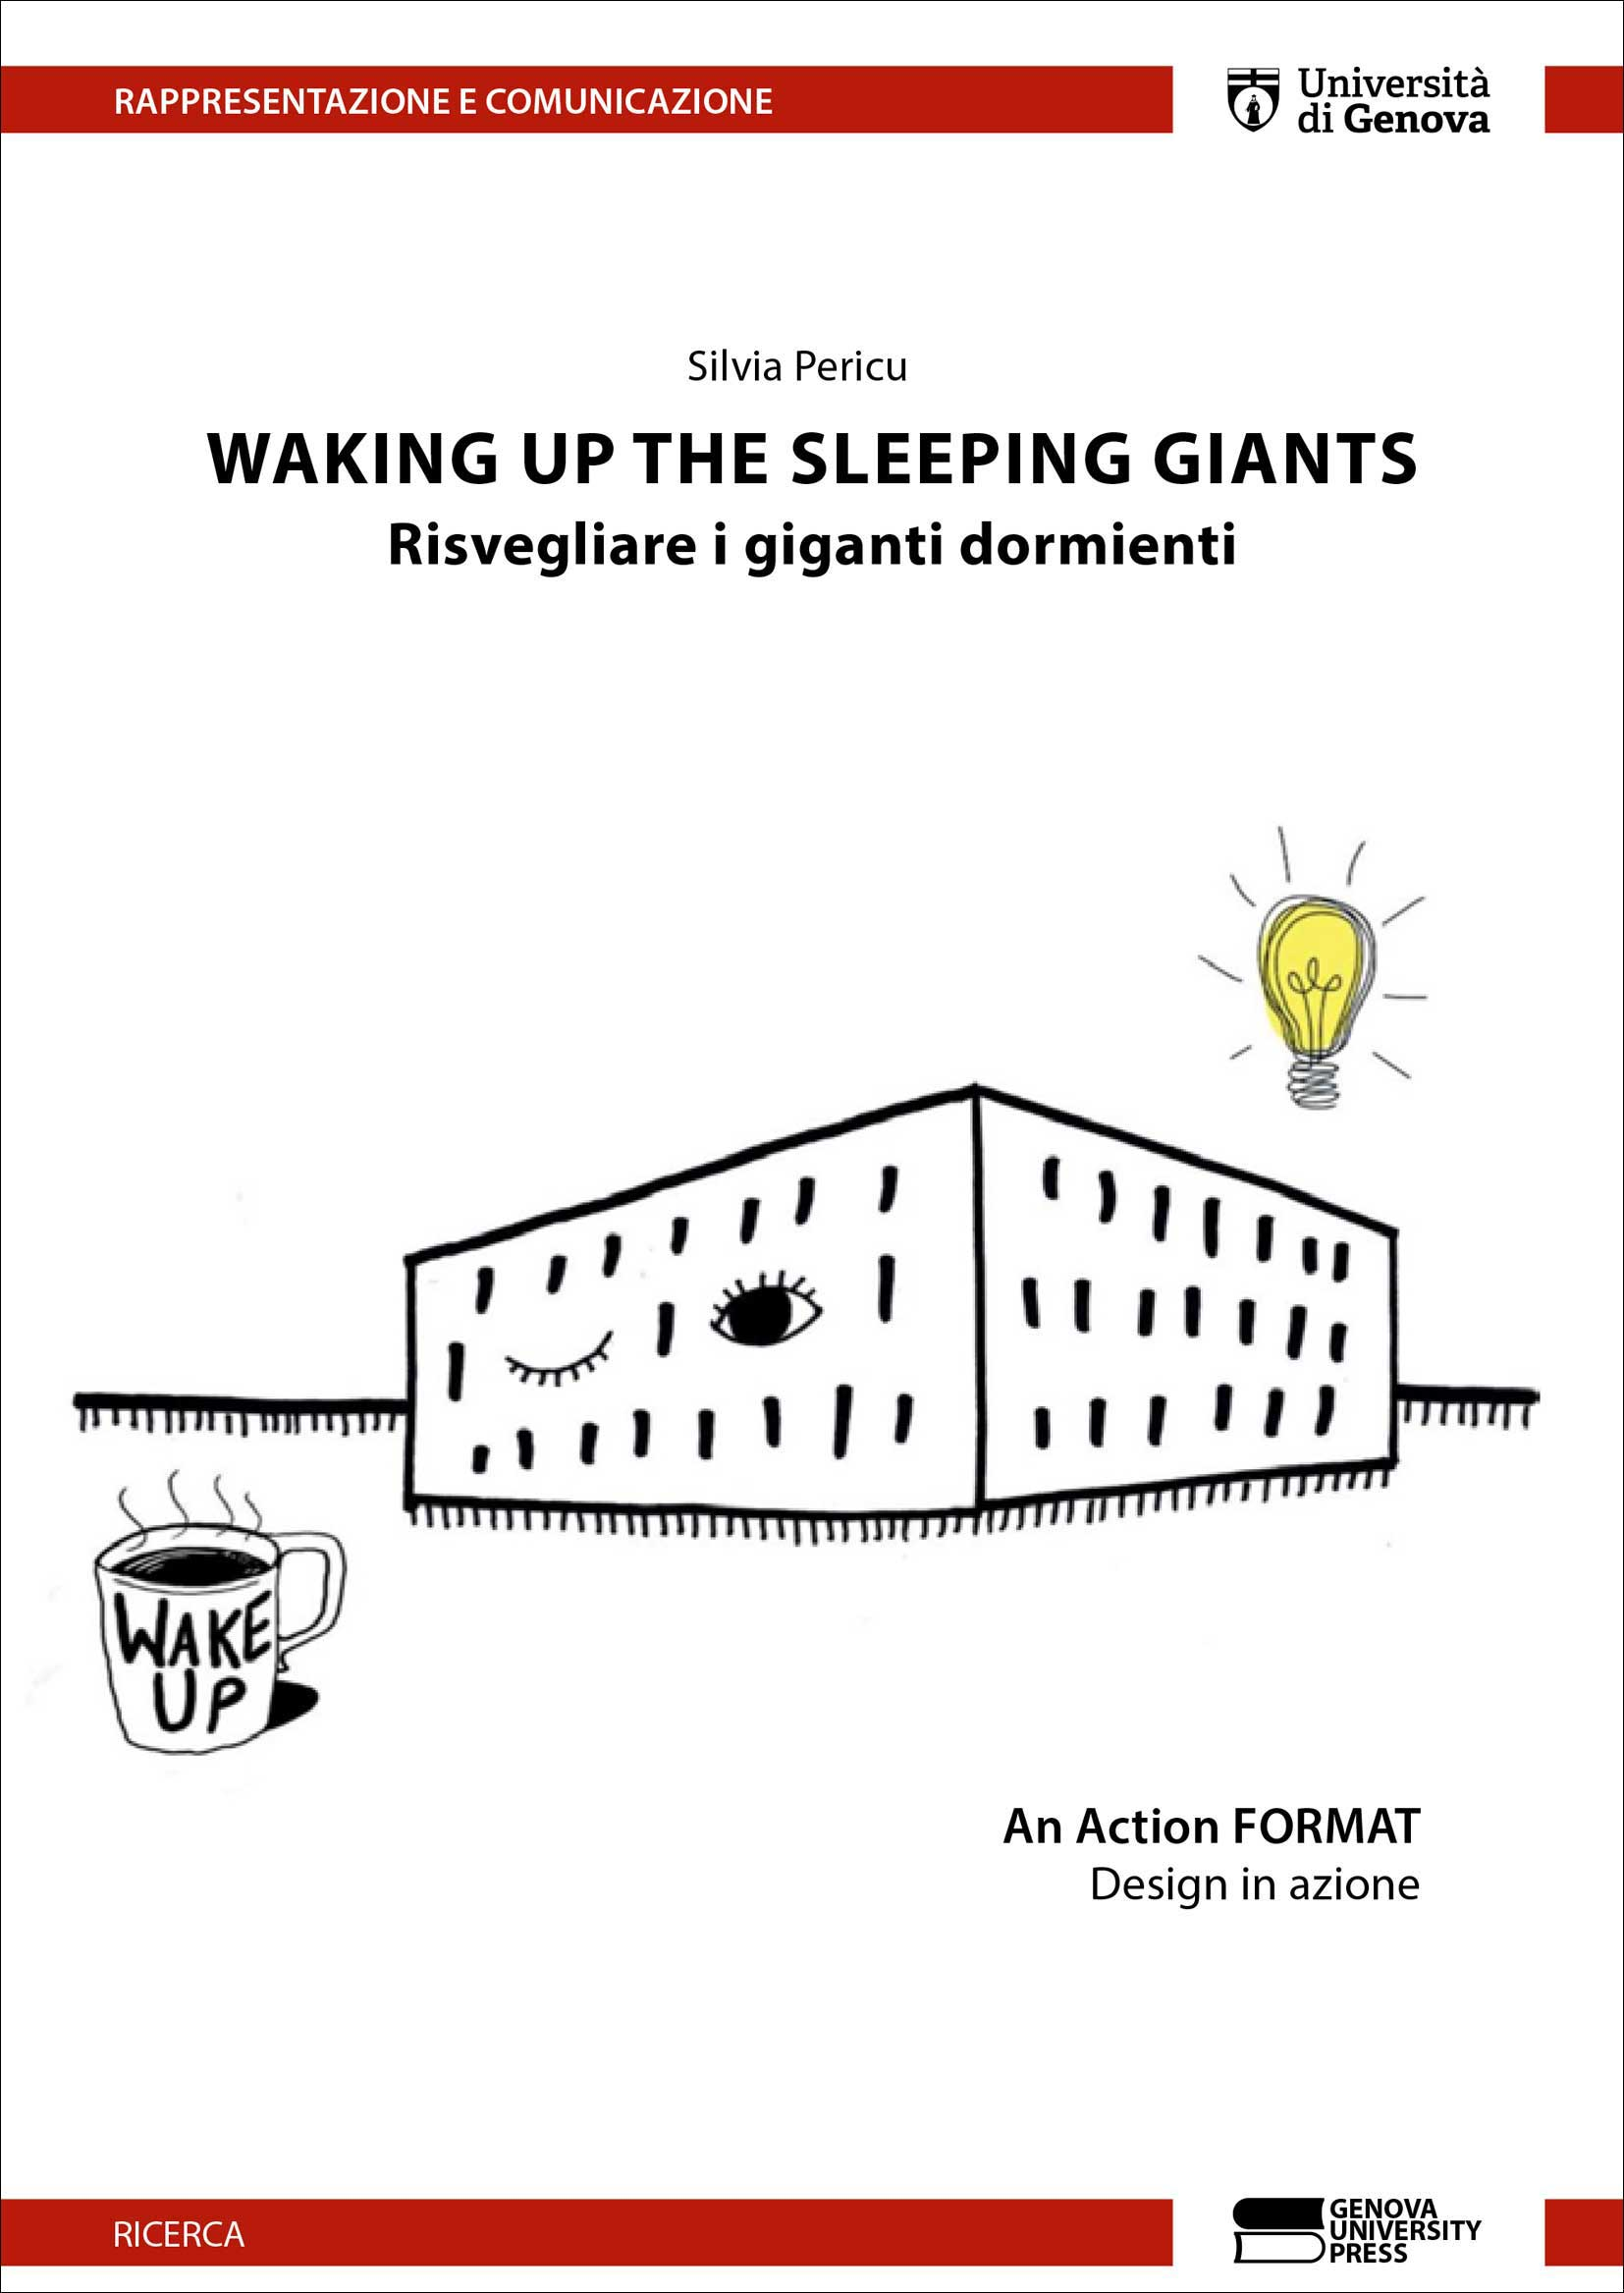 Waking up the sleeping giants